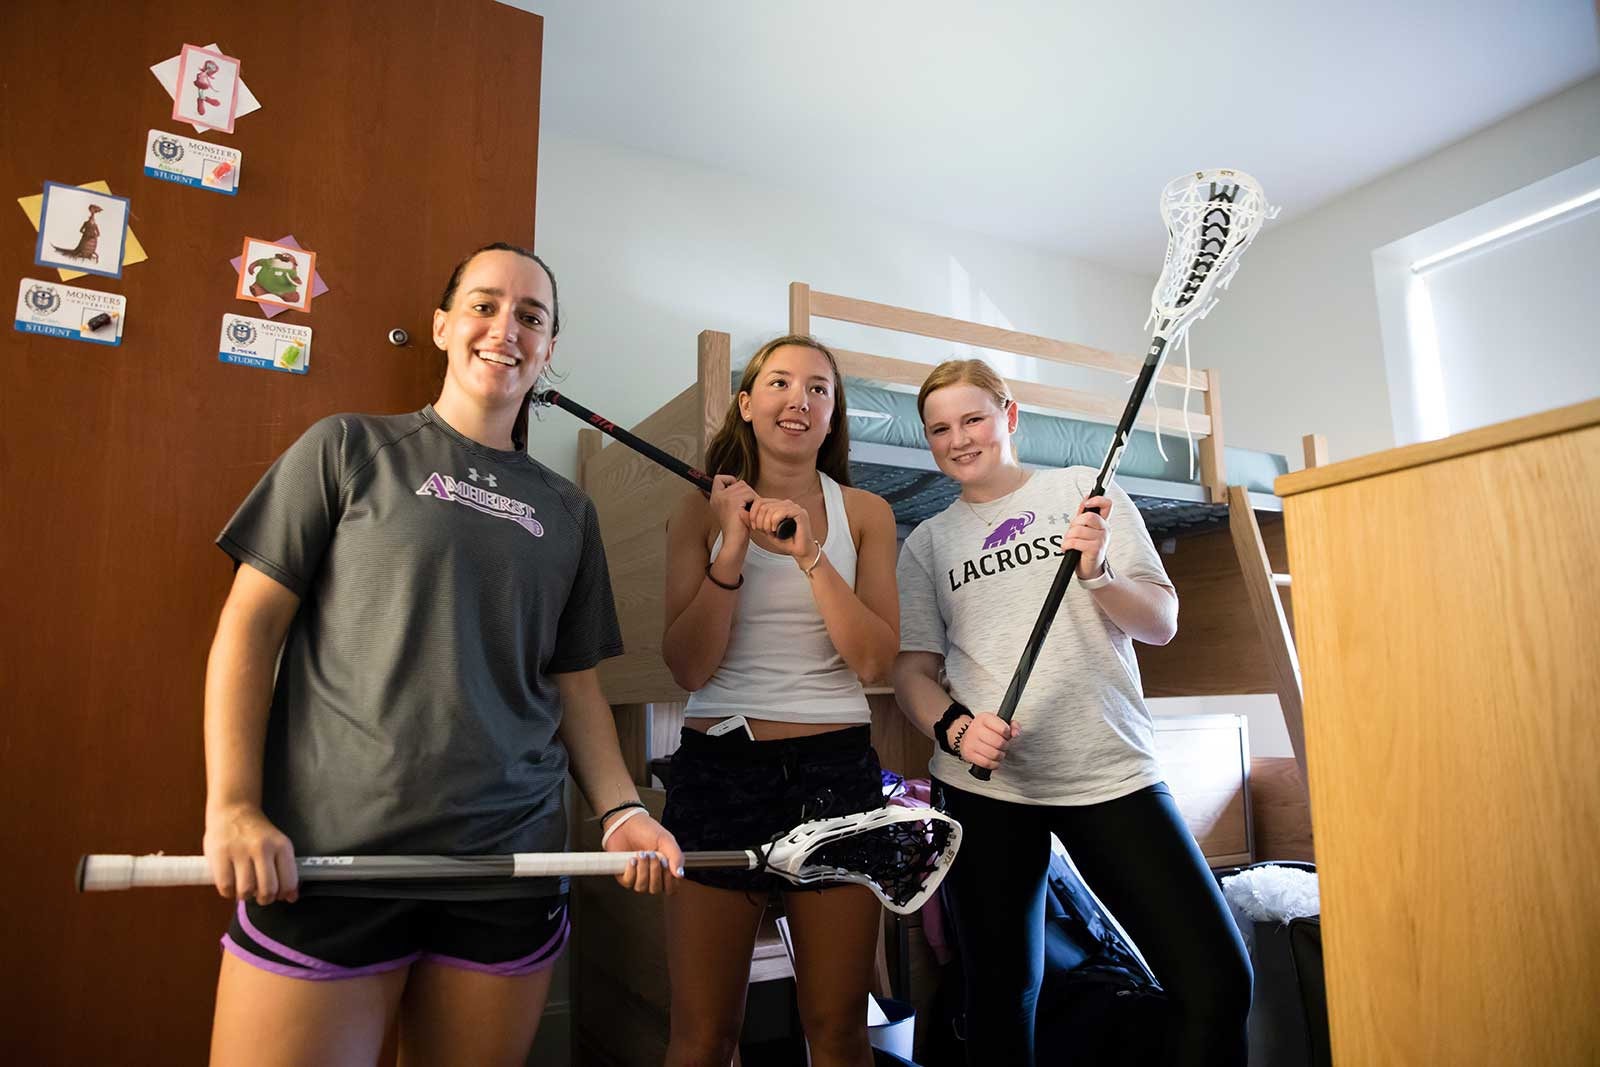 Kathleen Krieg '20 and Kaitlyn Haase '19, captains of women's lacrosse, helping classmate Ashly Tucker '22 move into James Hall.